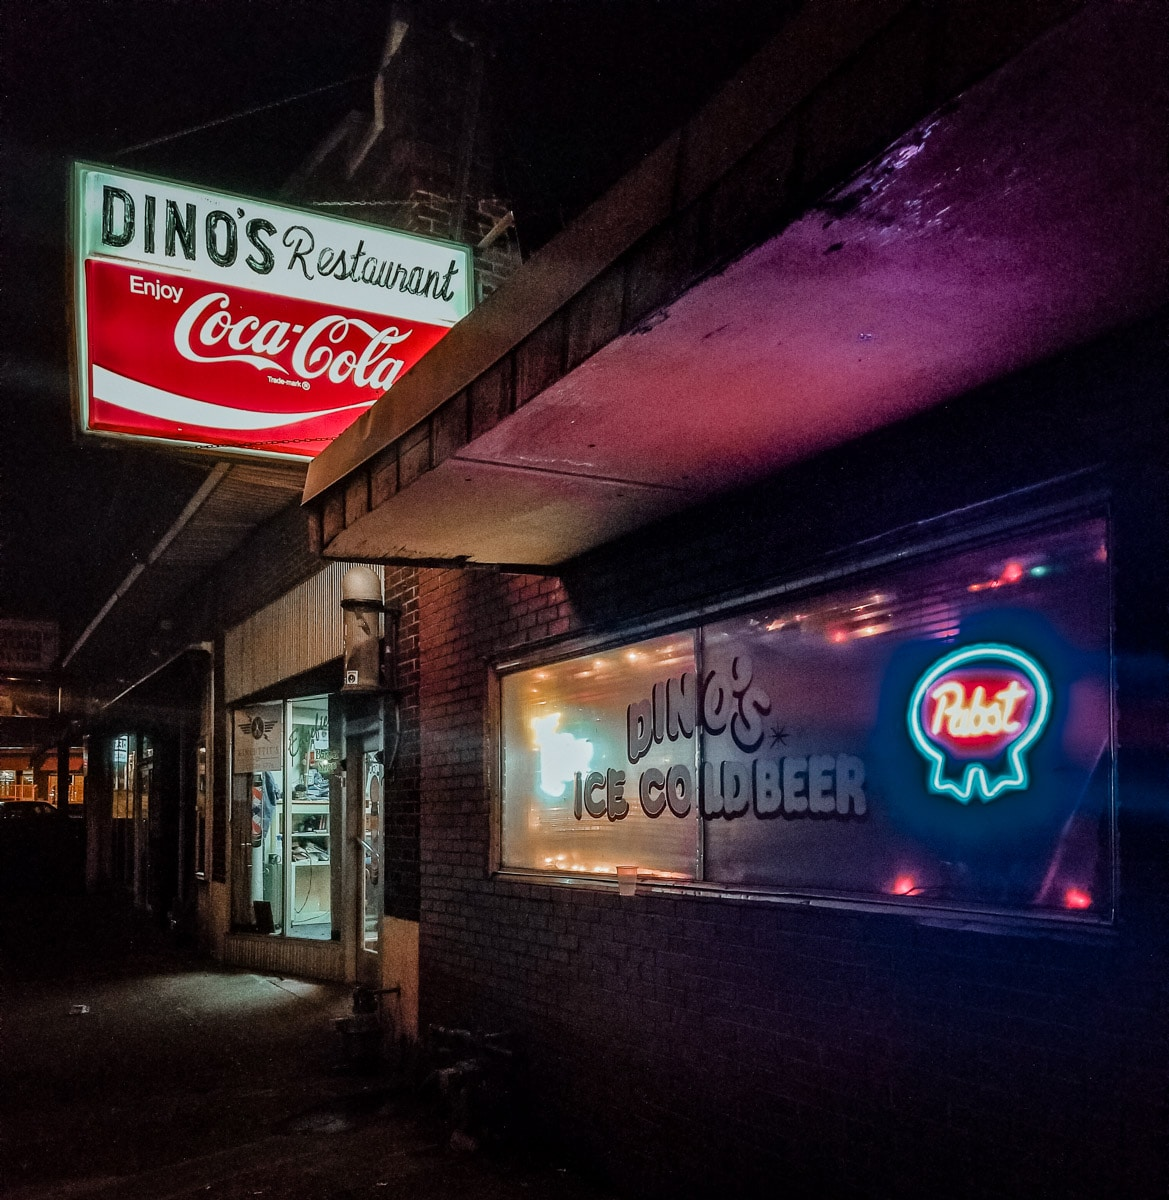 The Ultimate Nashville Travel Guide: 26 Things to do in Nashville - Dino's